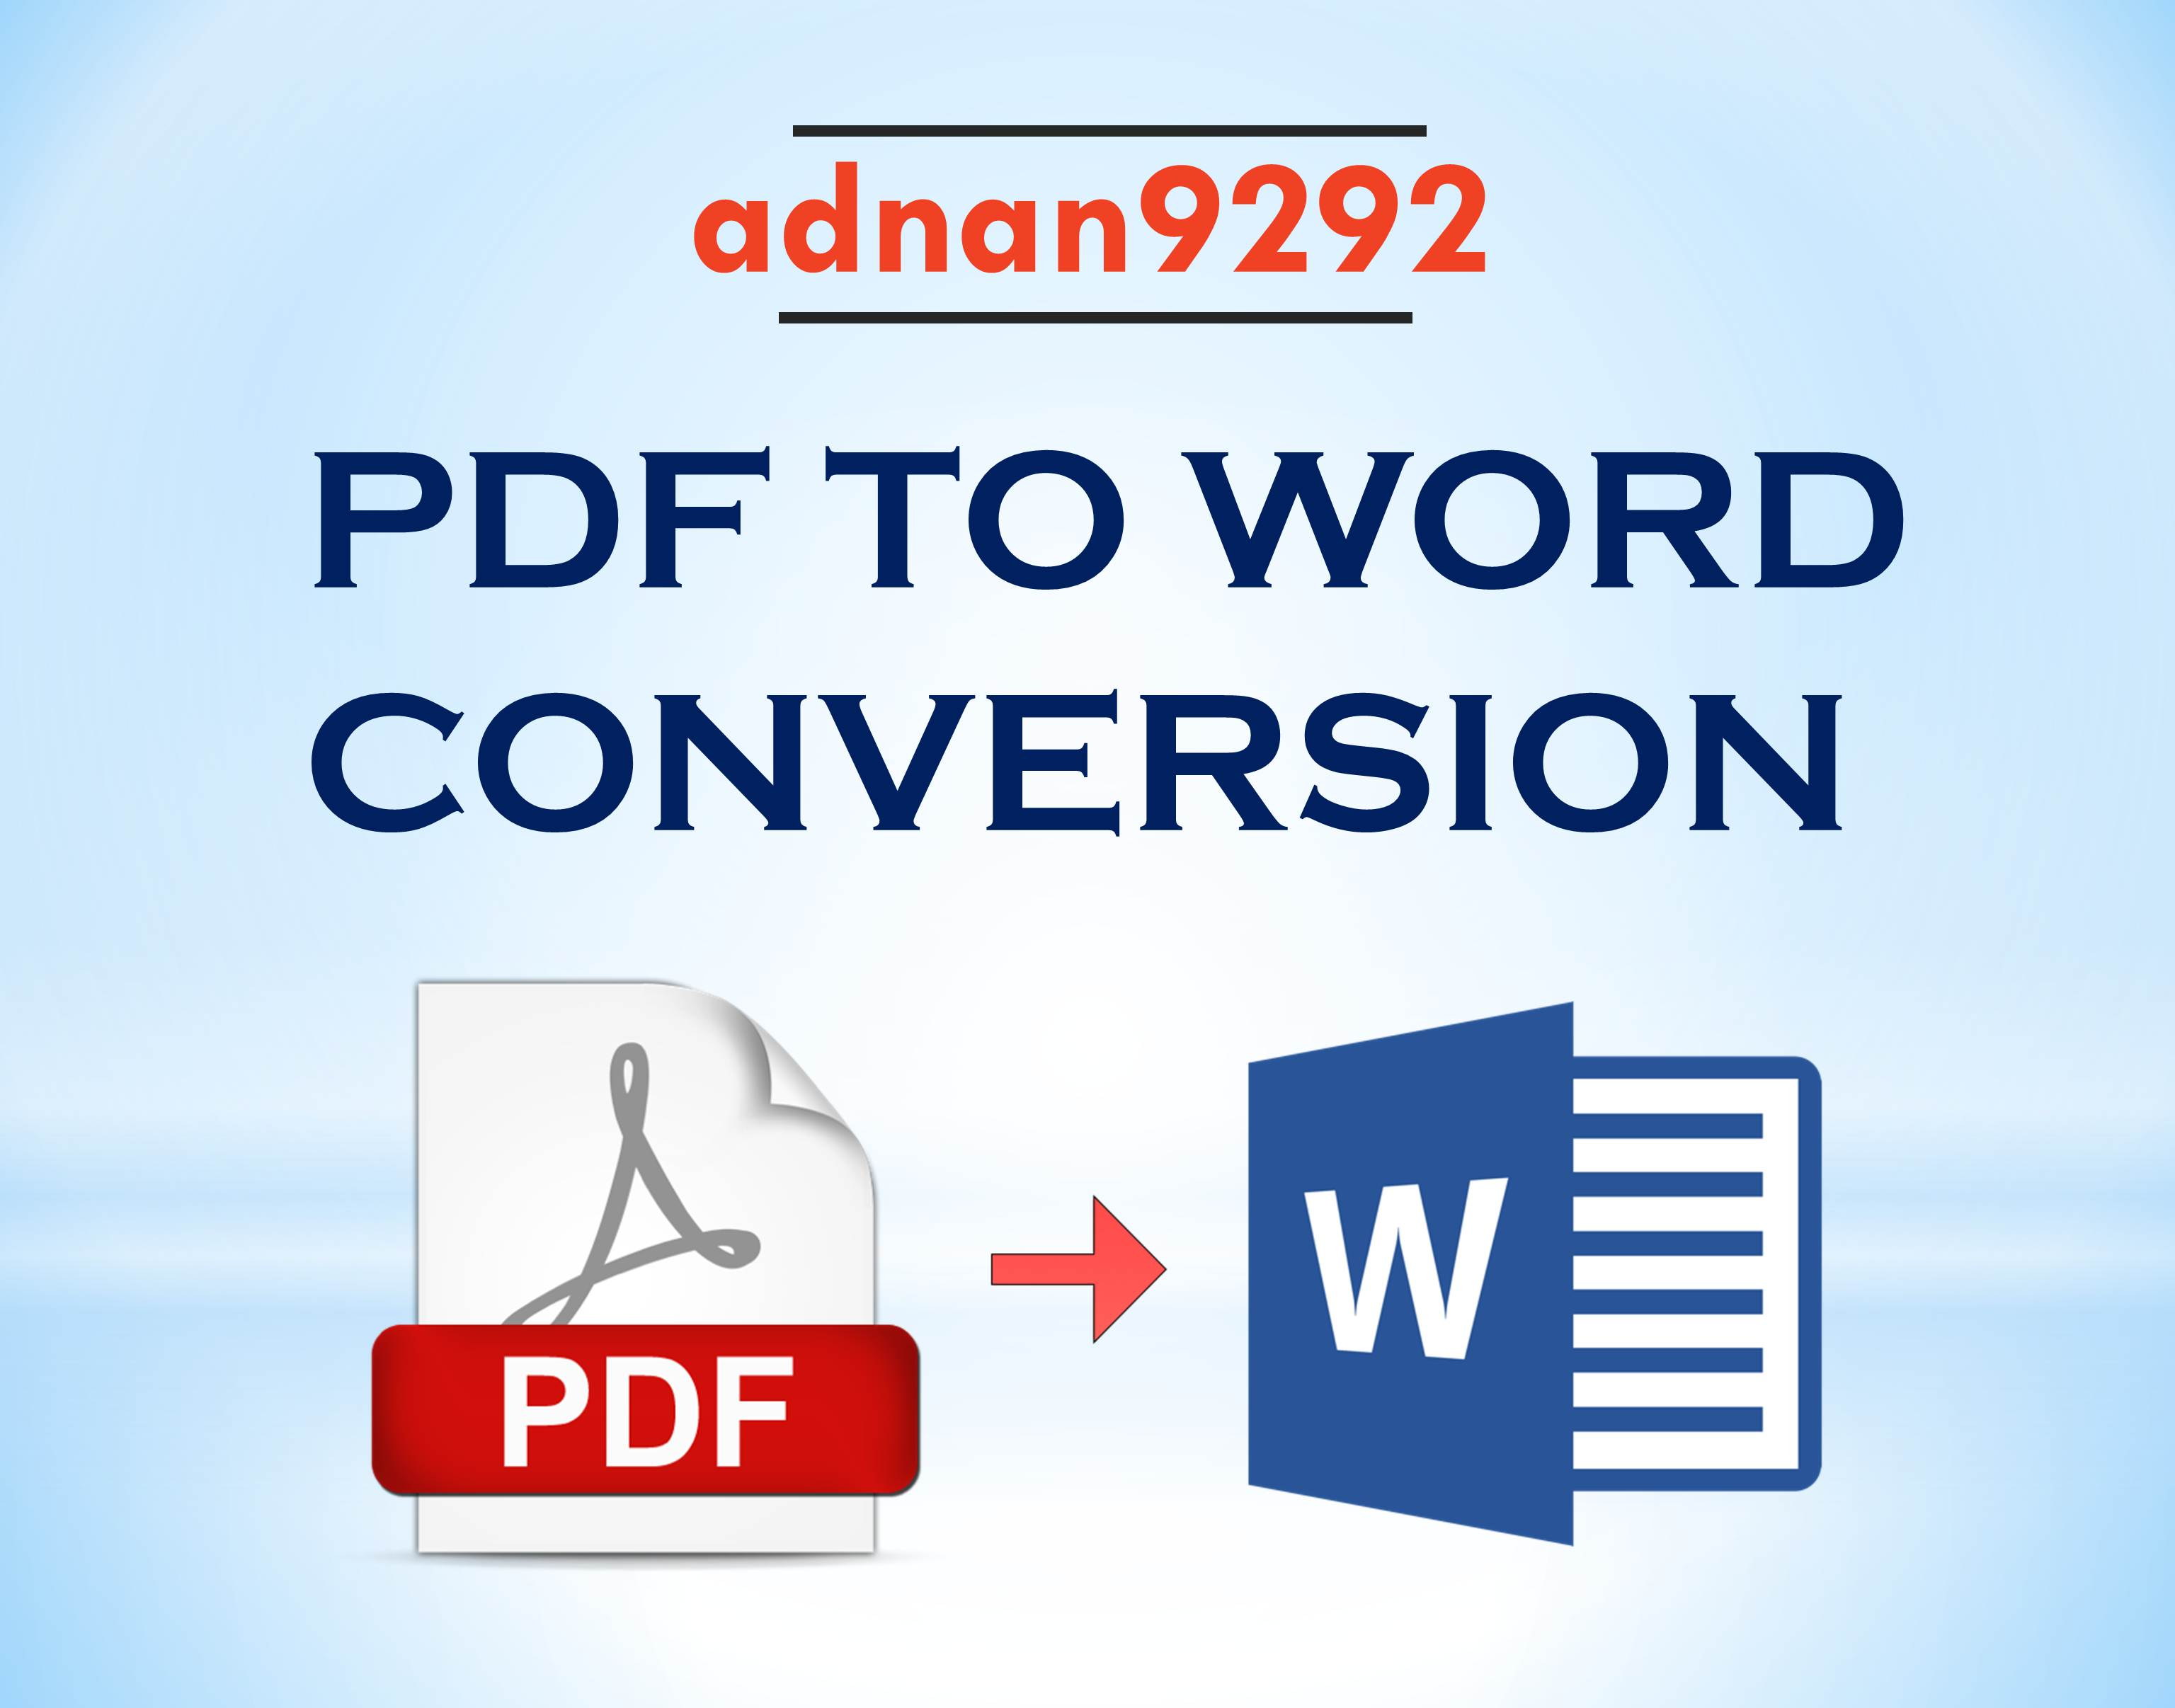 Conversion and editing of PDF files to Words 50 Files